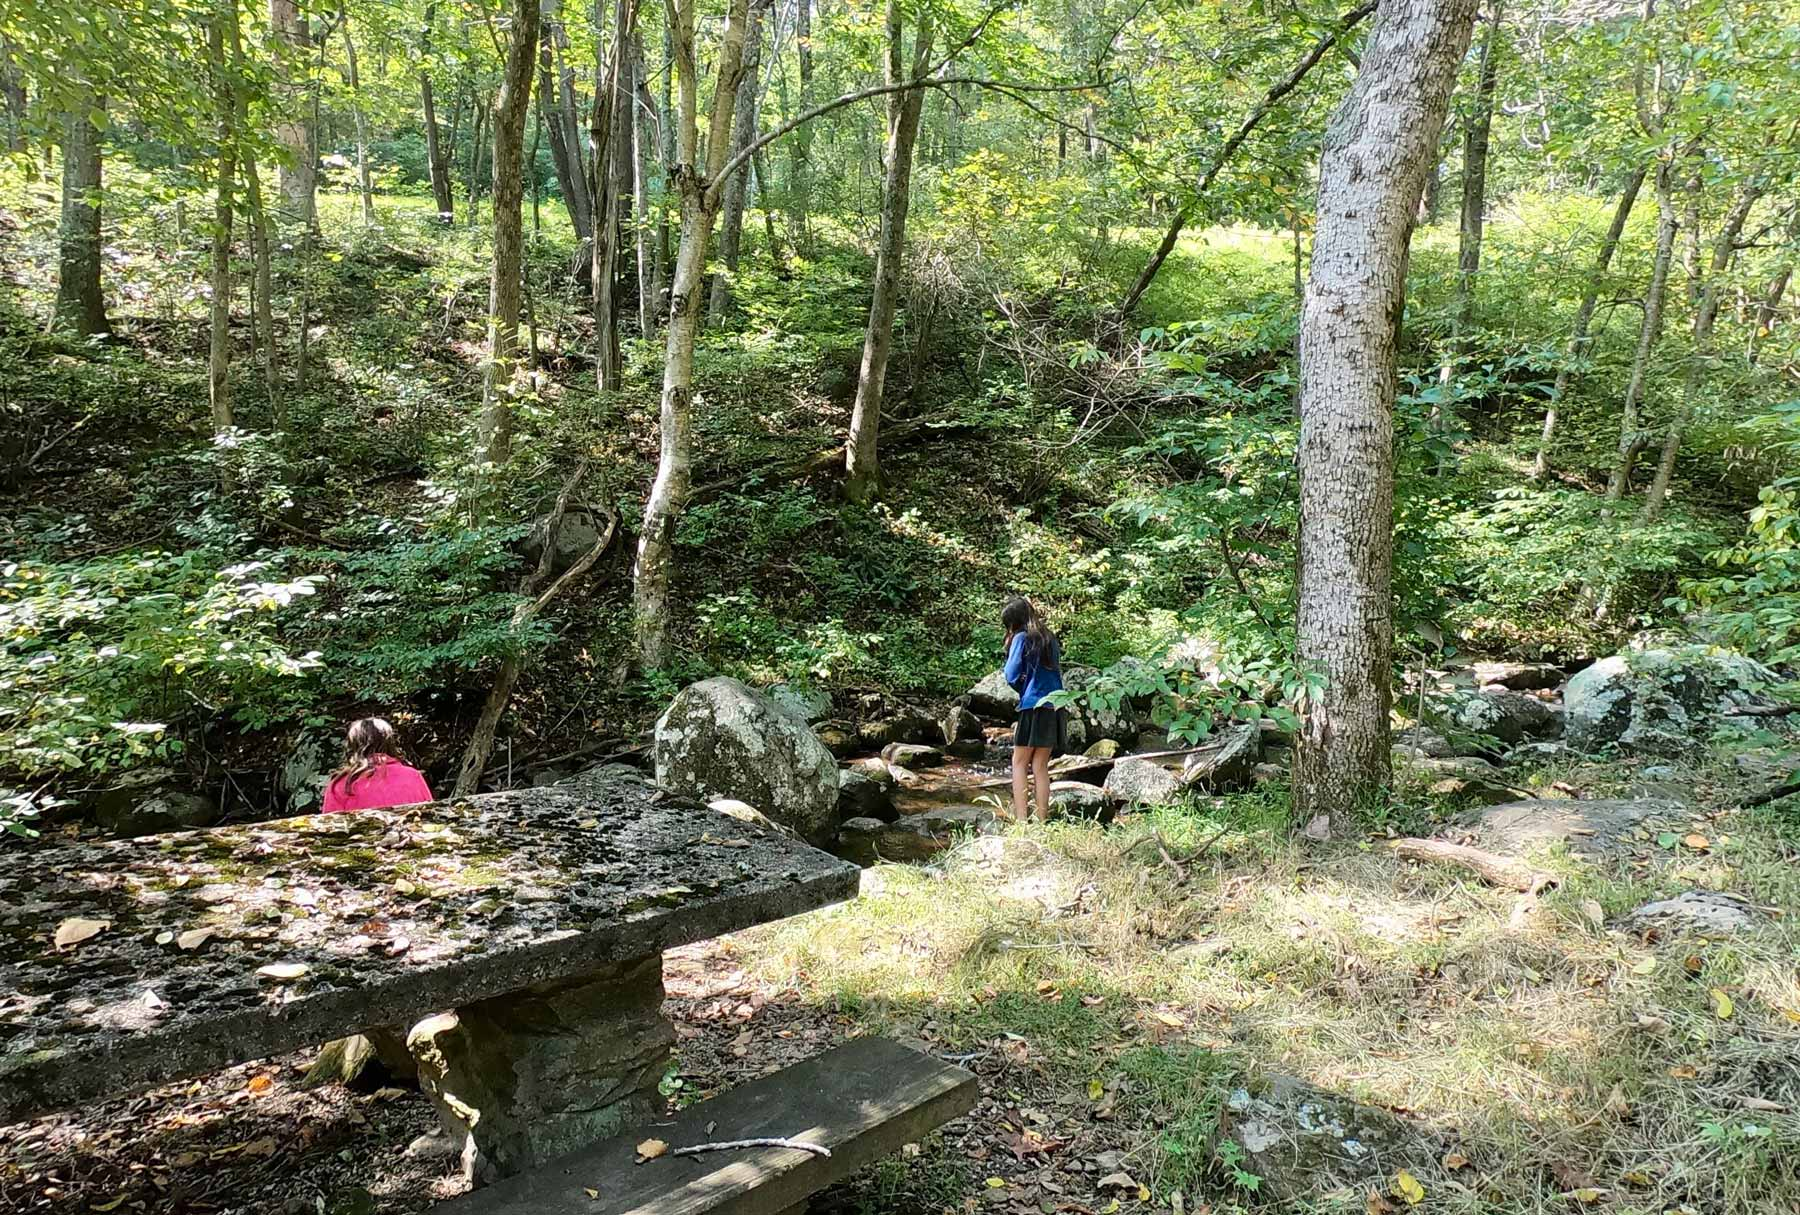 Two girls at Peaks of Otter Picnic Area in Virginia along the Little Stony Creek